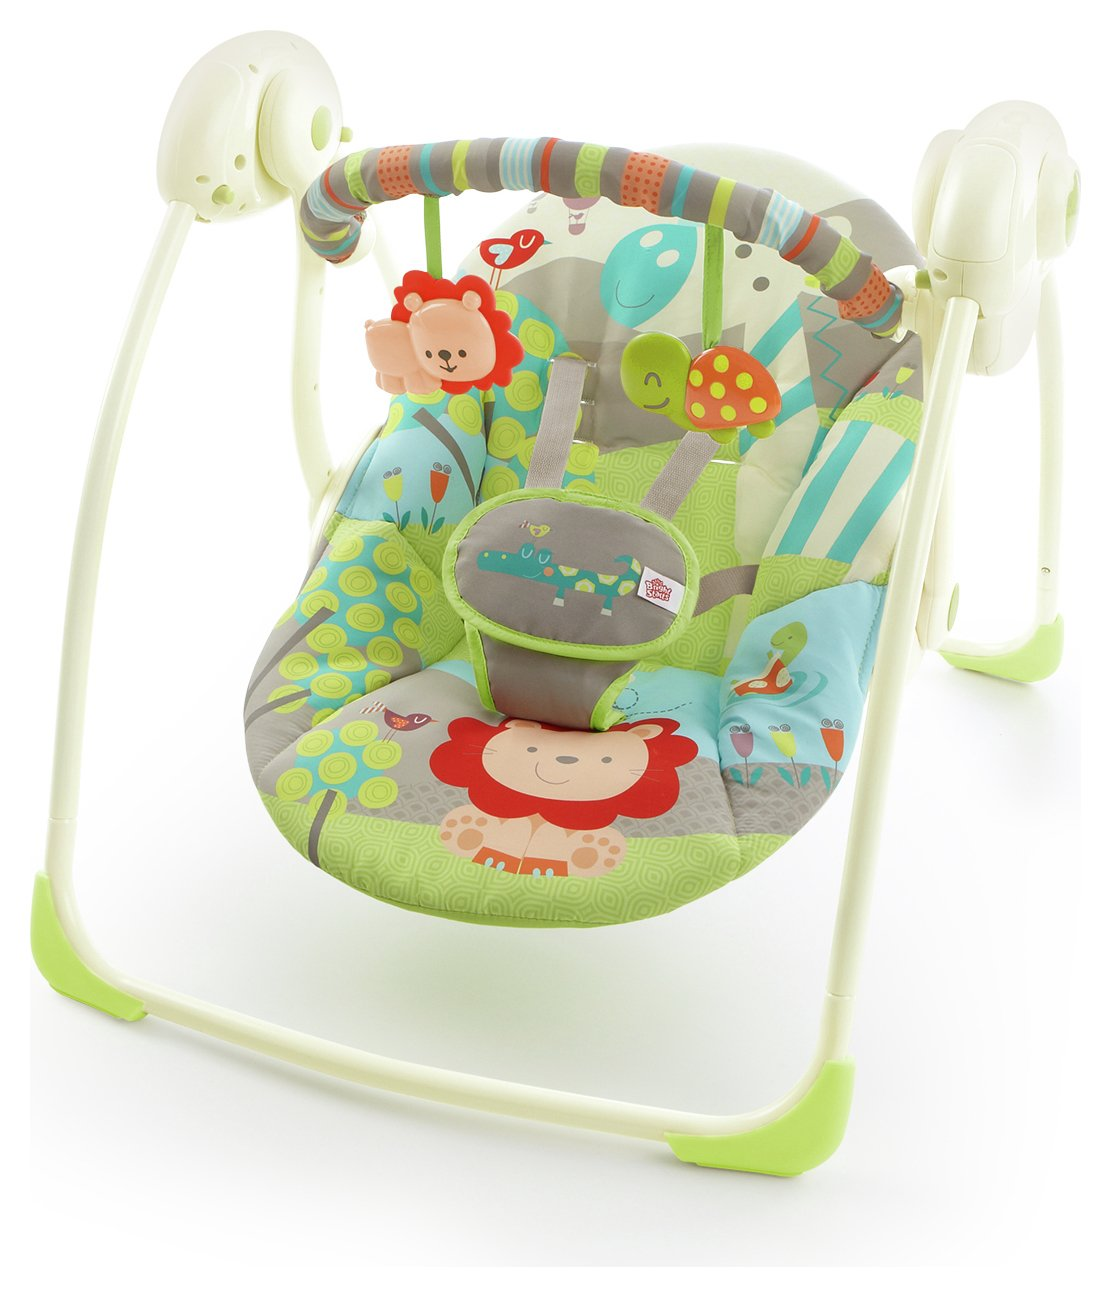 Image of Bright Starts - Up, Up and Away Portable Swing